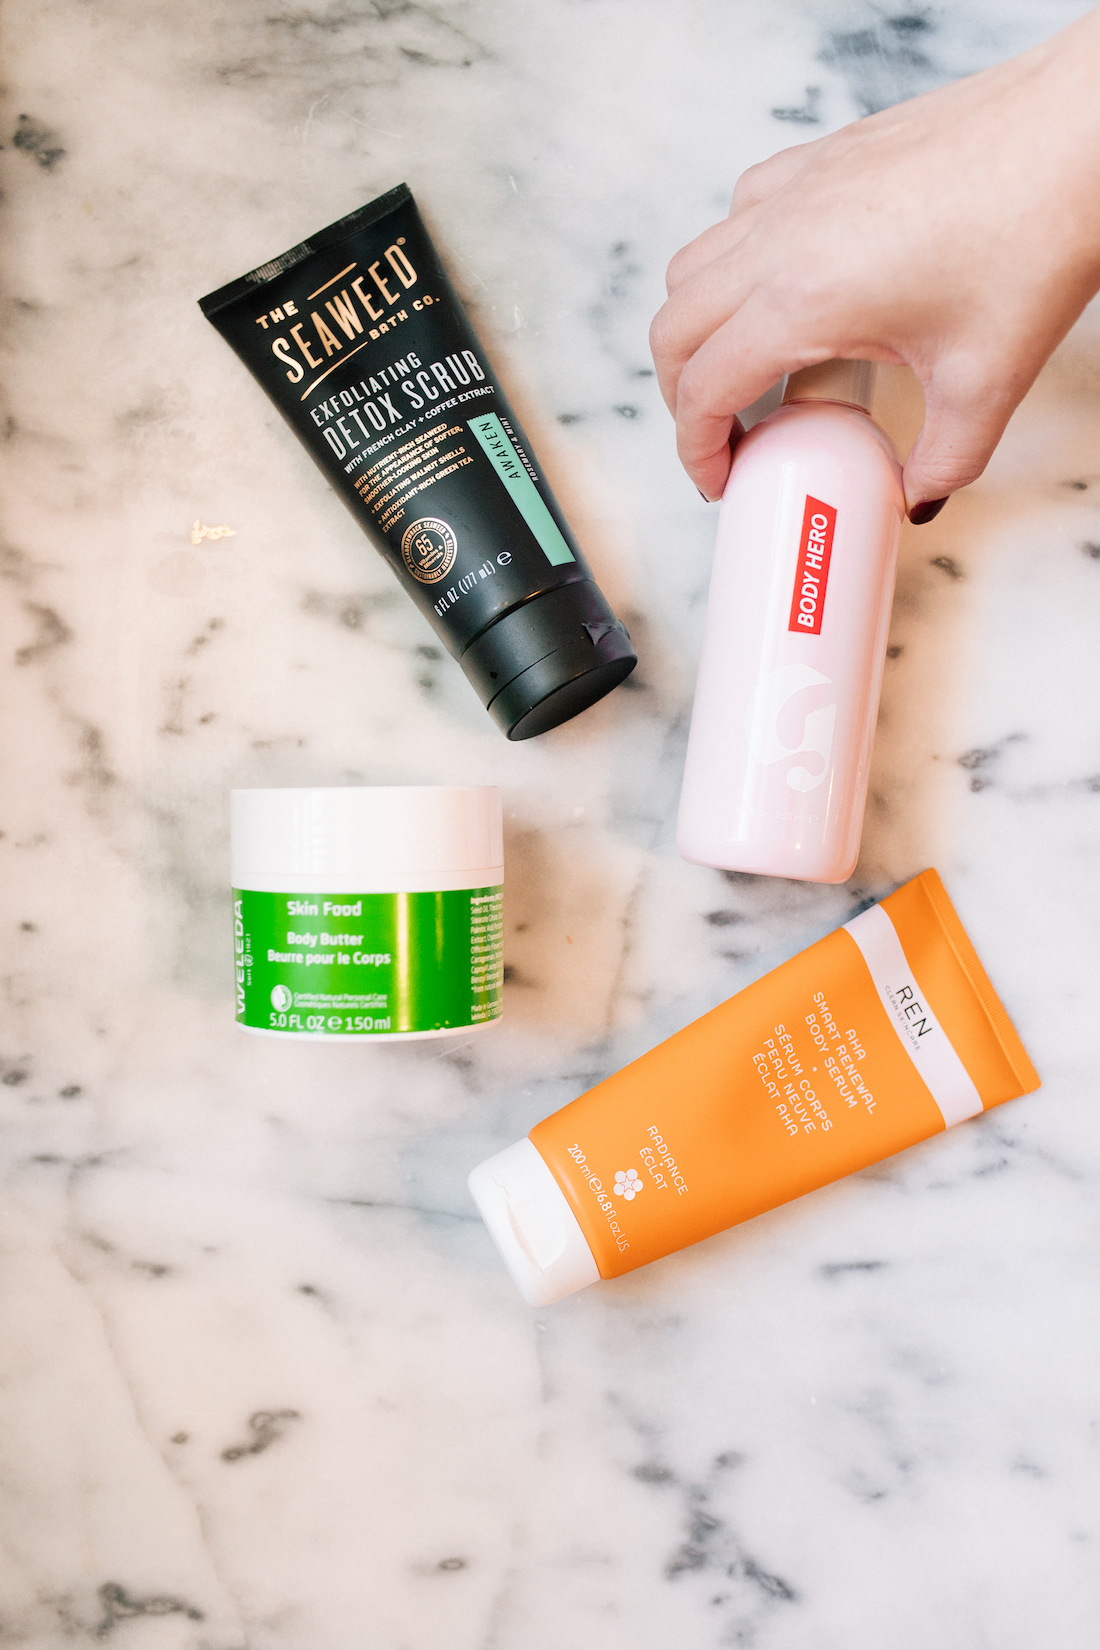 my favorite body products for dry skin   the best body wash, body scrub, body serum, and body butter! #beauty #skincare #beautyblogger #glossier   thestripe.com